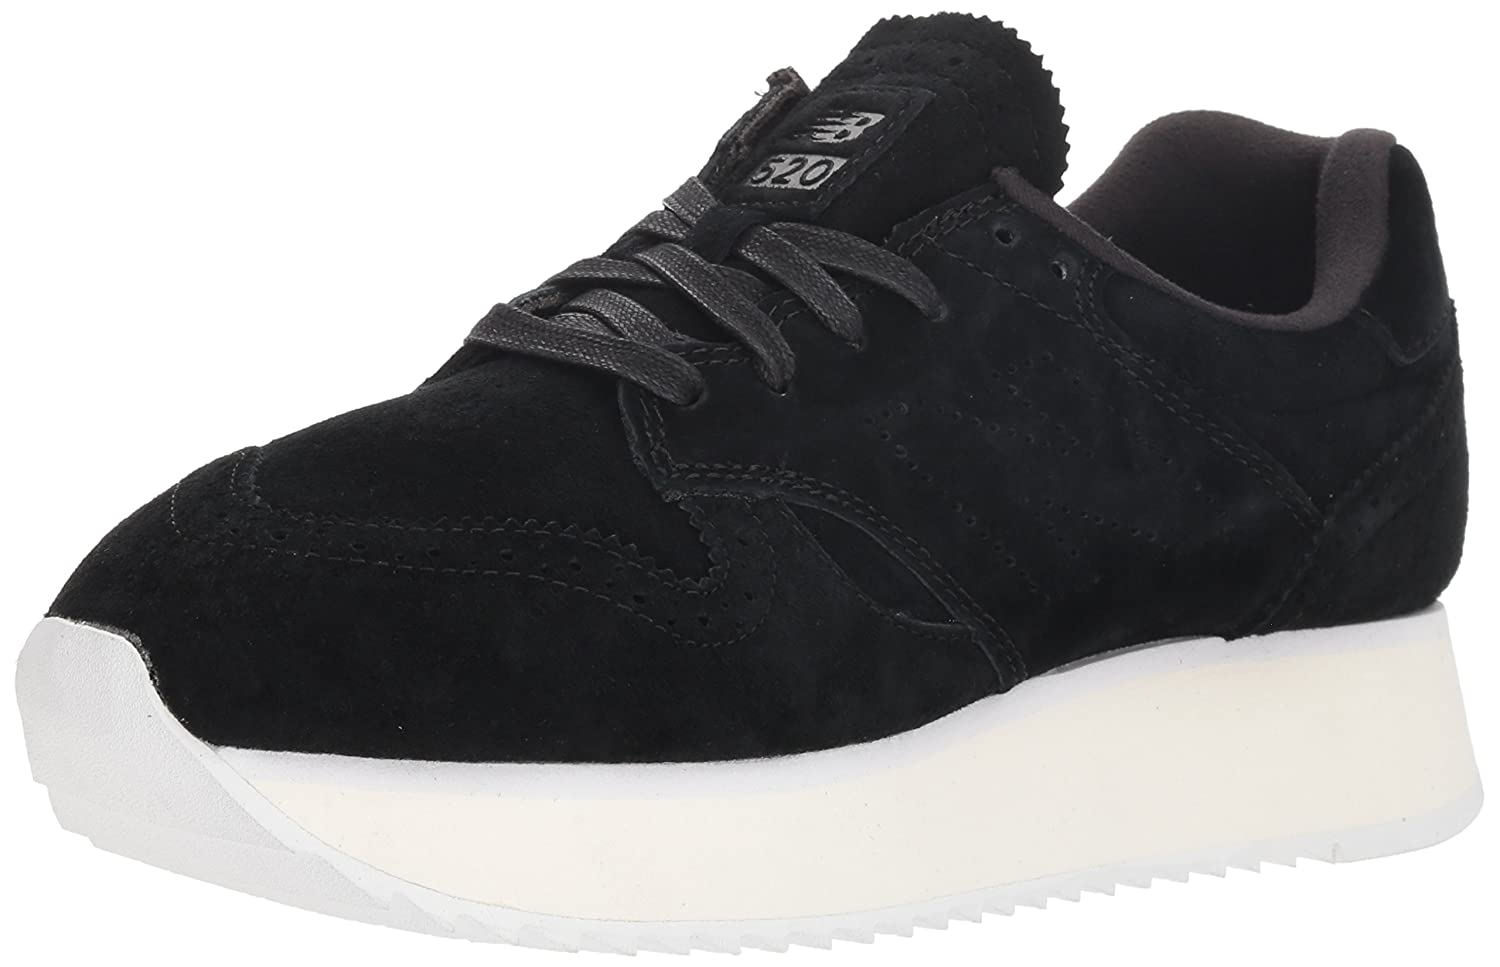 New Balance Women's 520v1 Sneaker B0771C4R1Y 8 B(M) US|Black